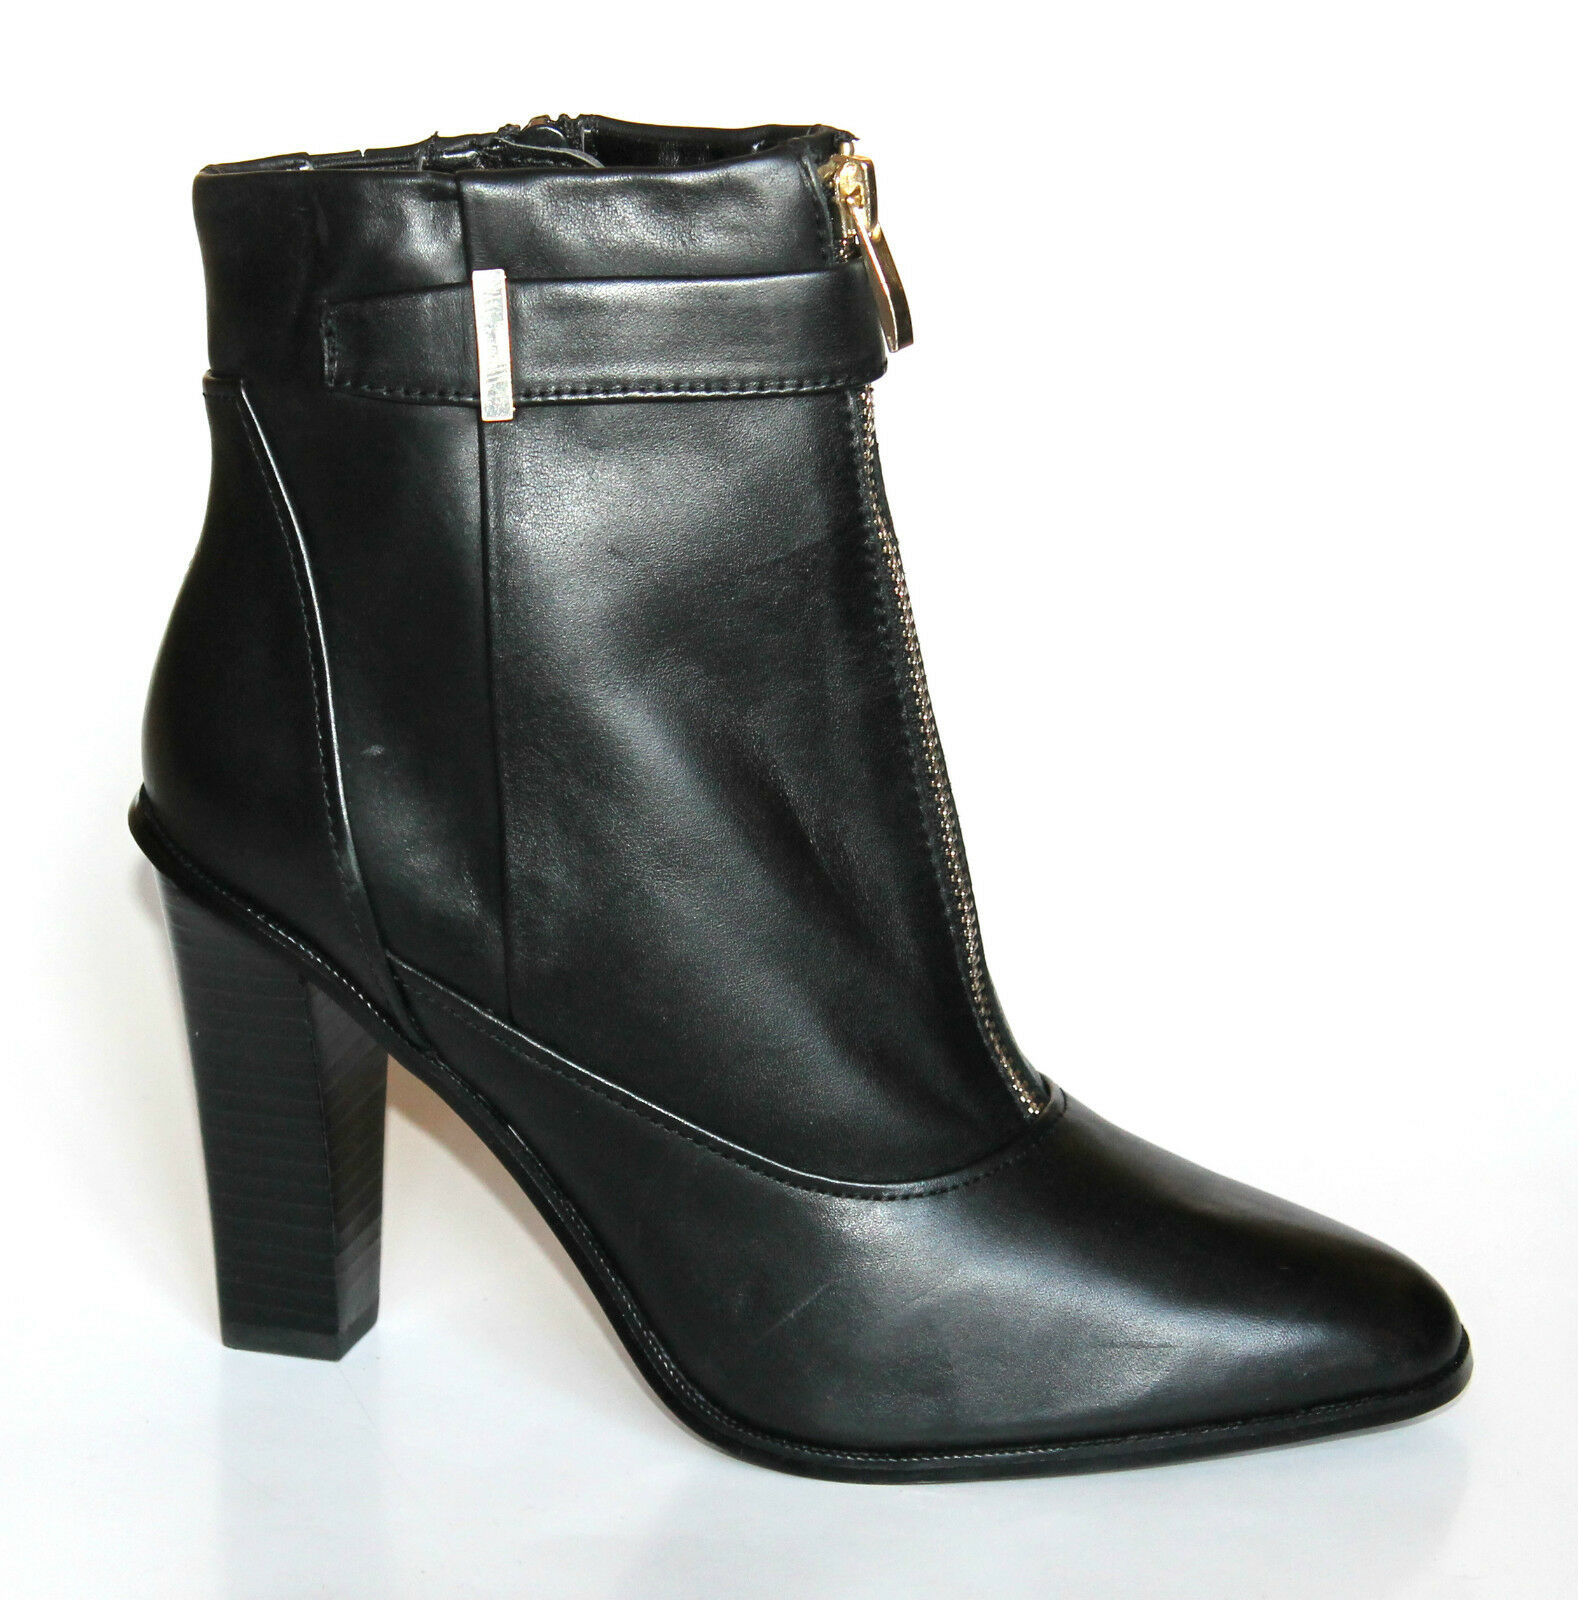 M&S Autograph Ladies UK 5 (EU 38) Black Leather High Heel Zip Up New Ankle Boots